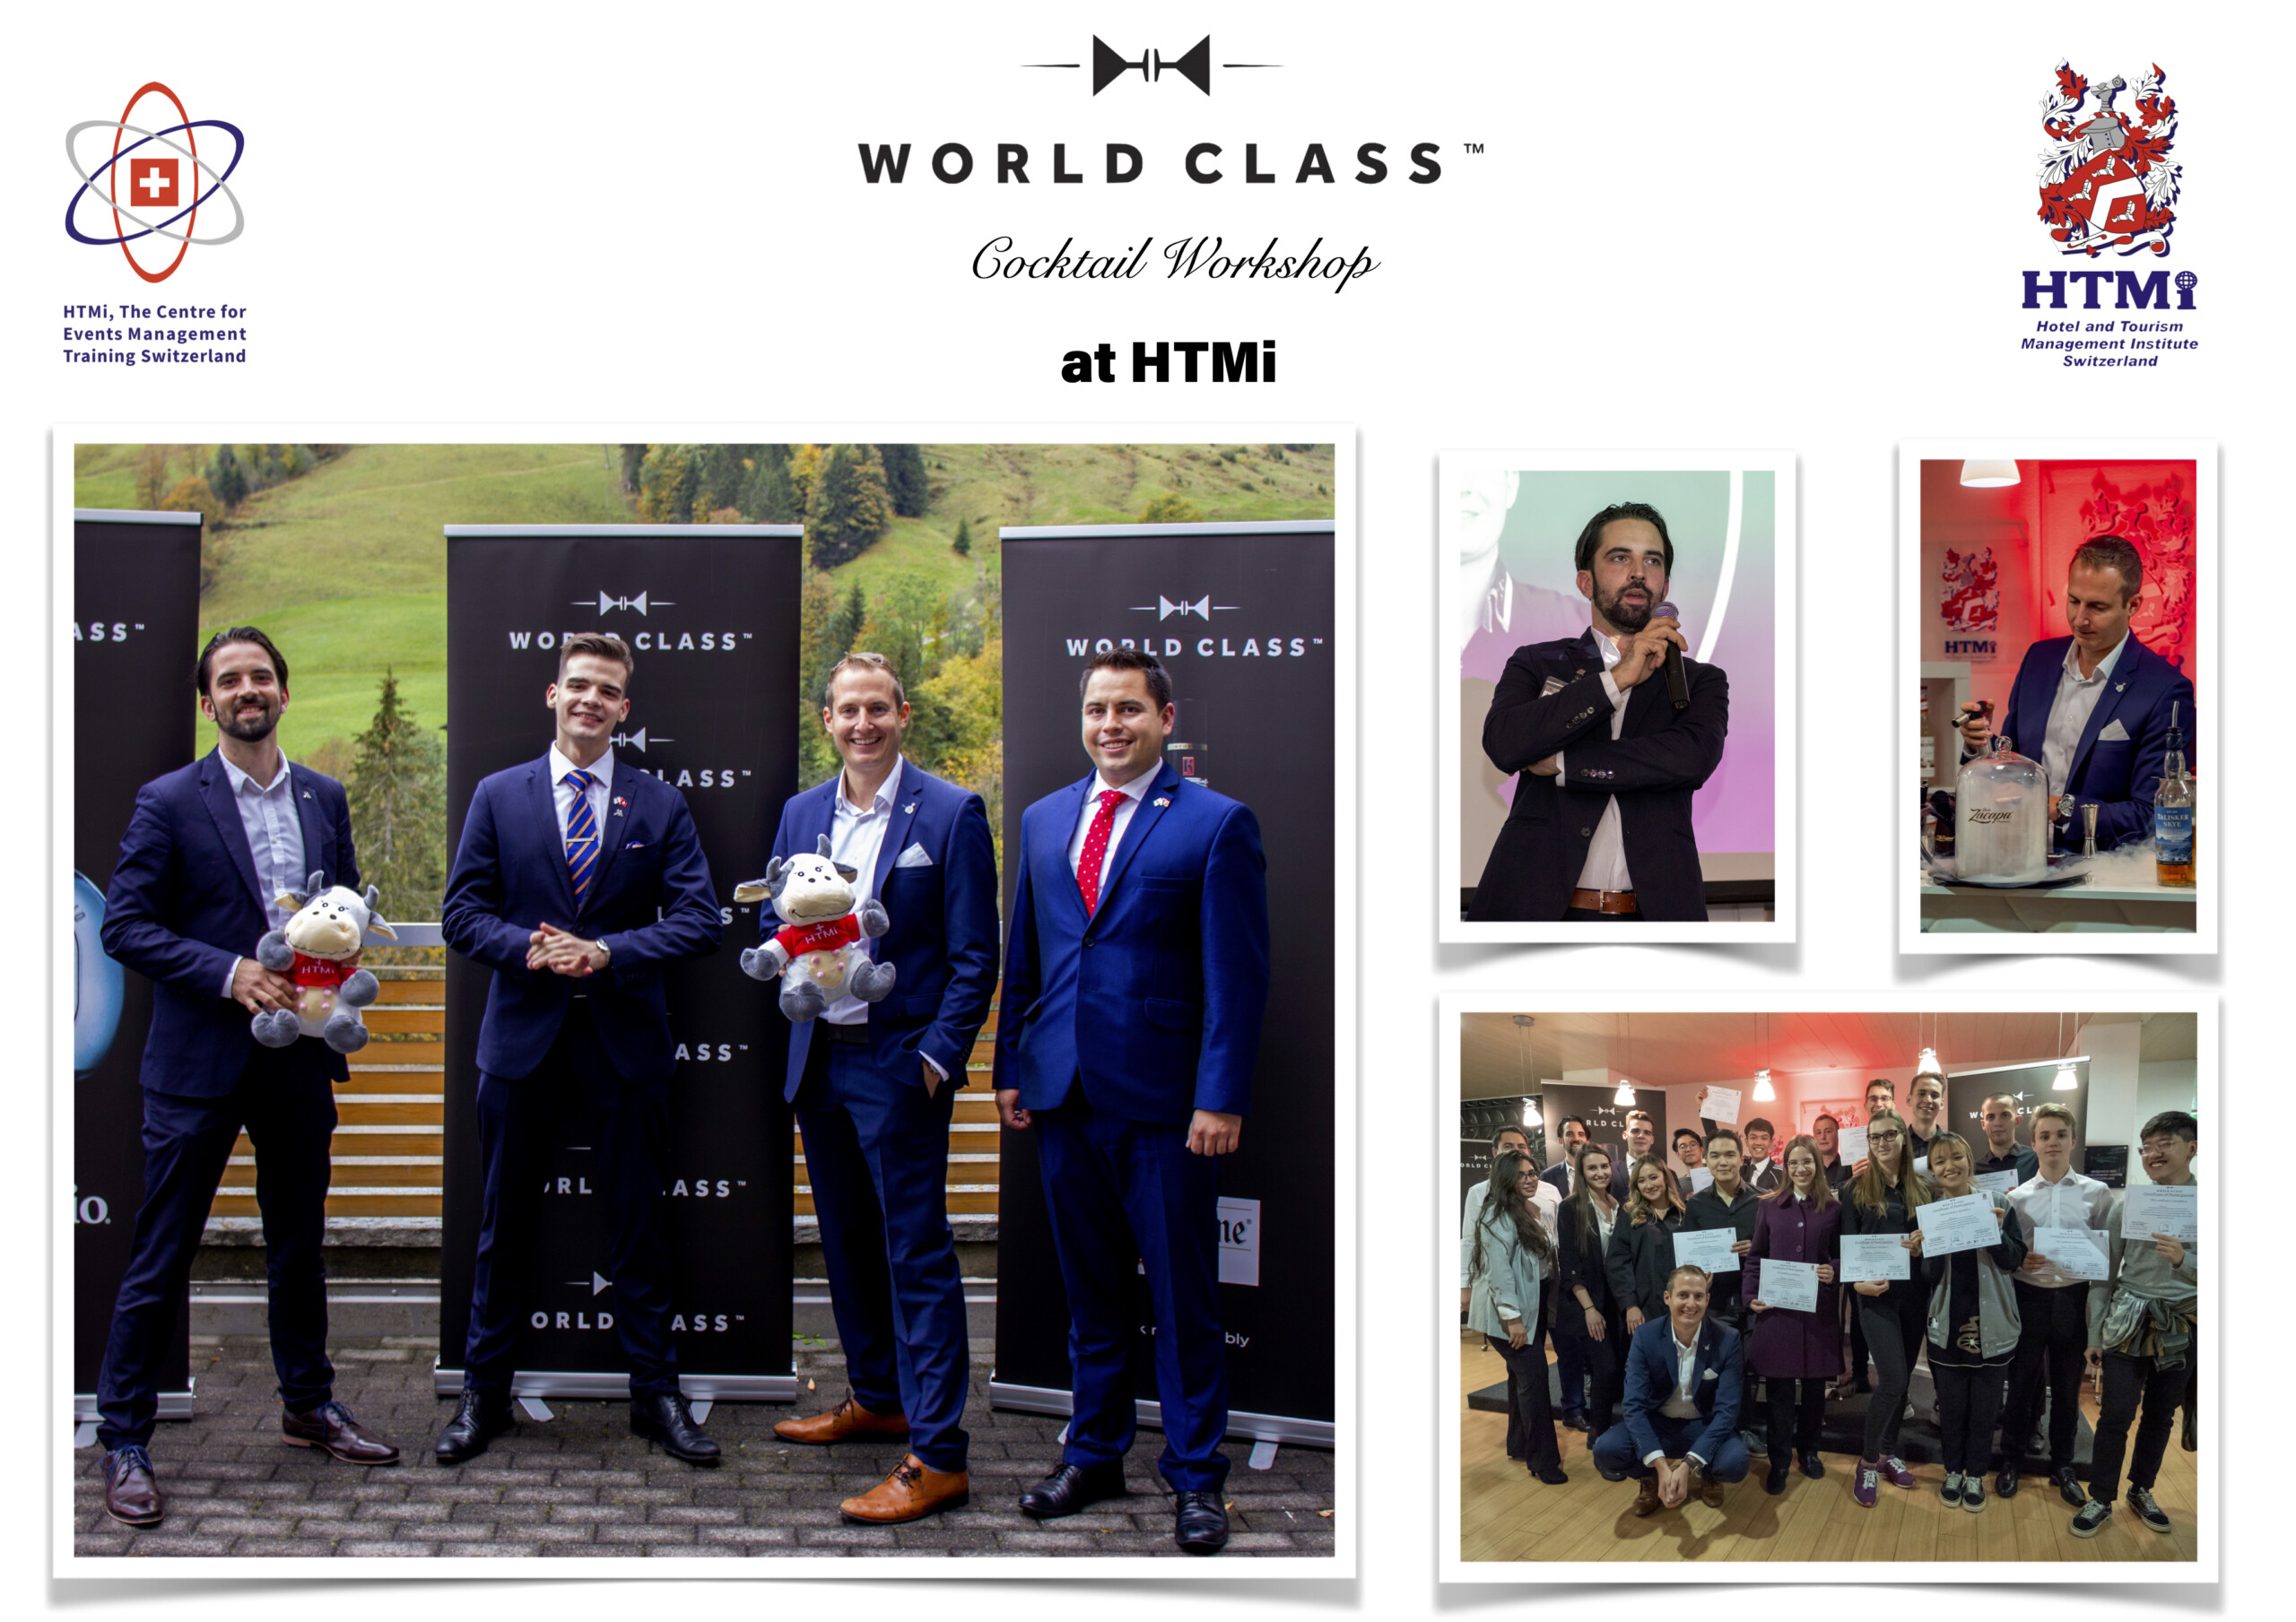 World Class Cocktail Workshop at HTMi Switzerland